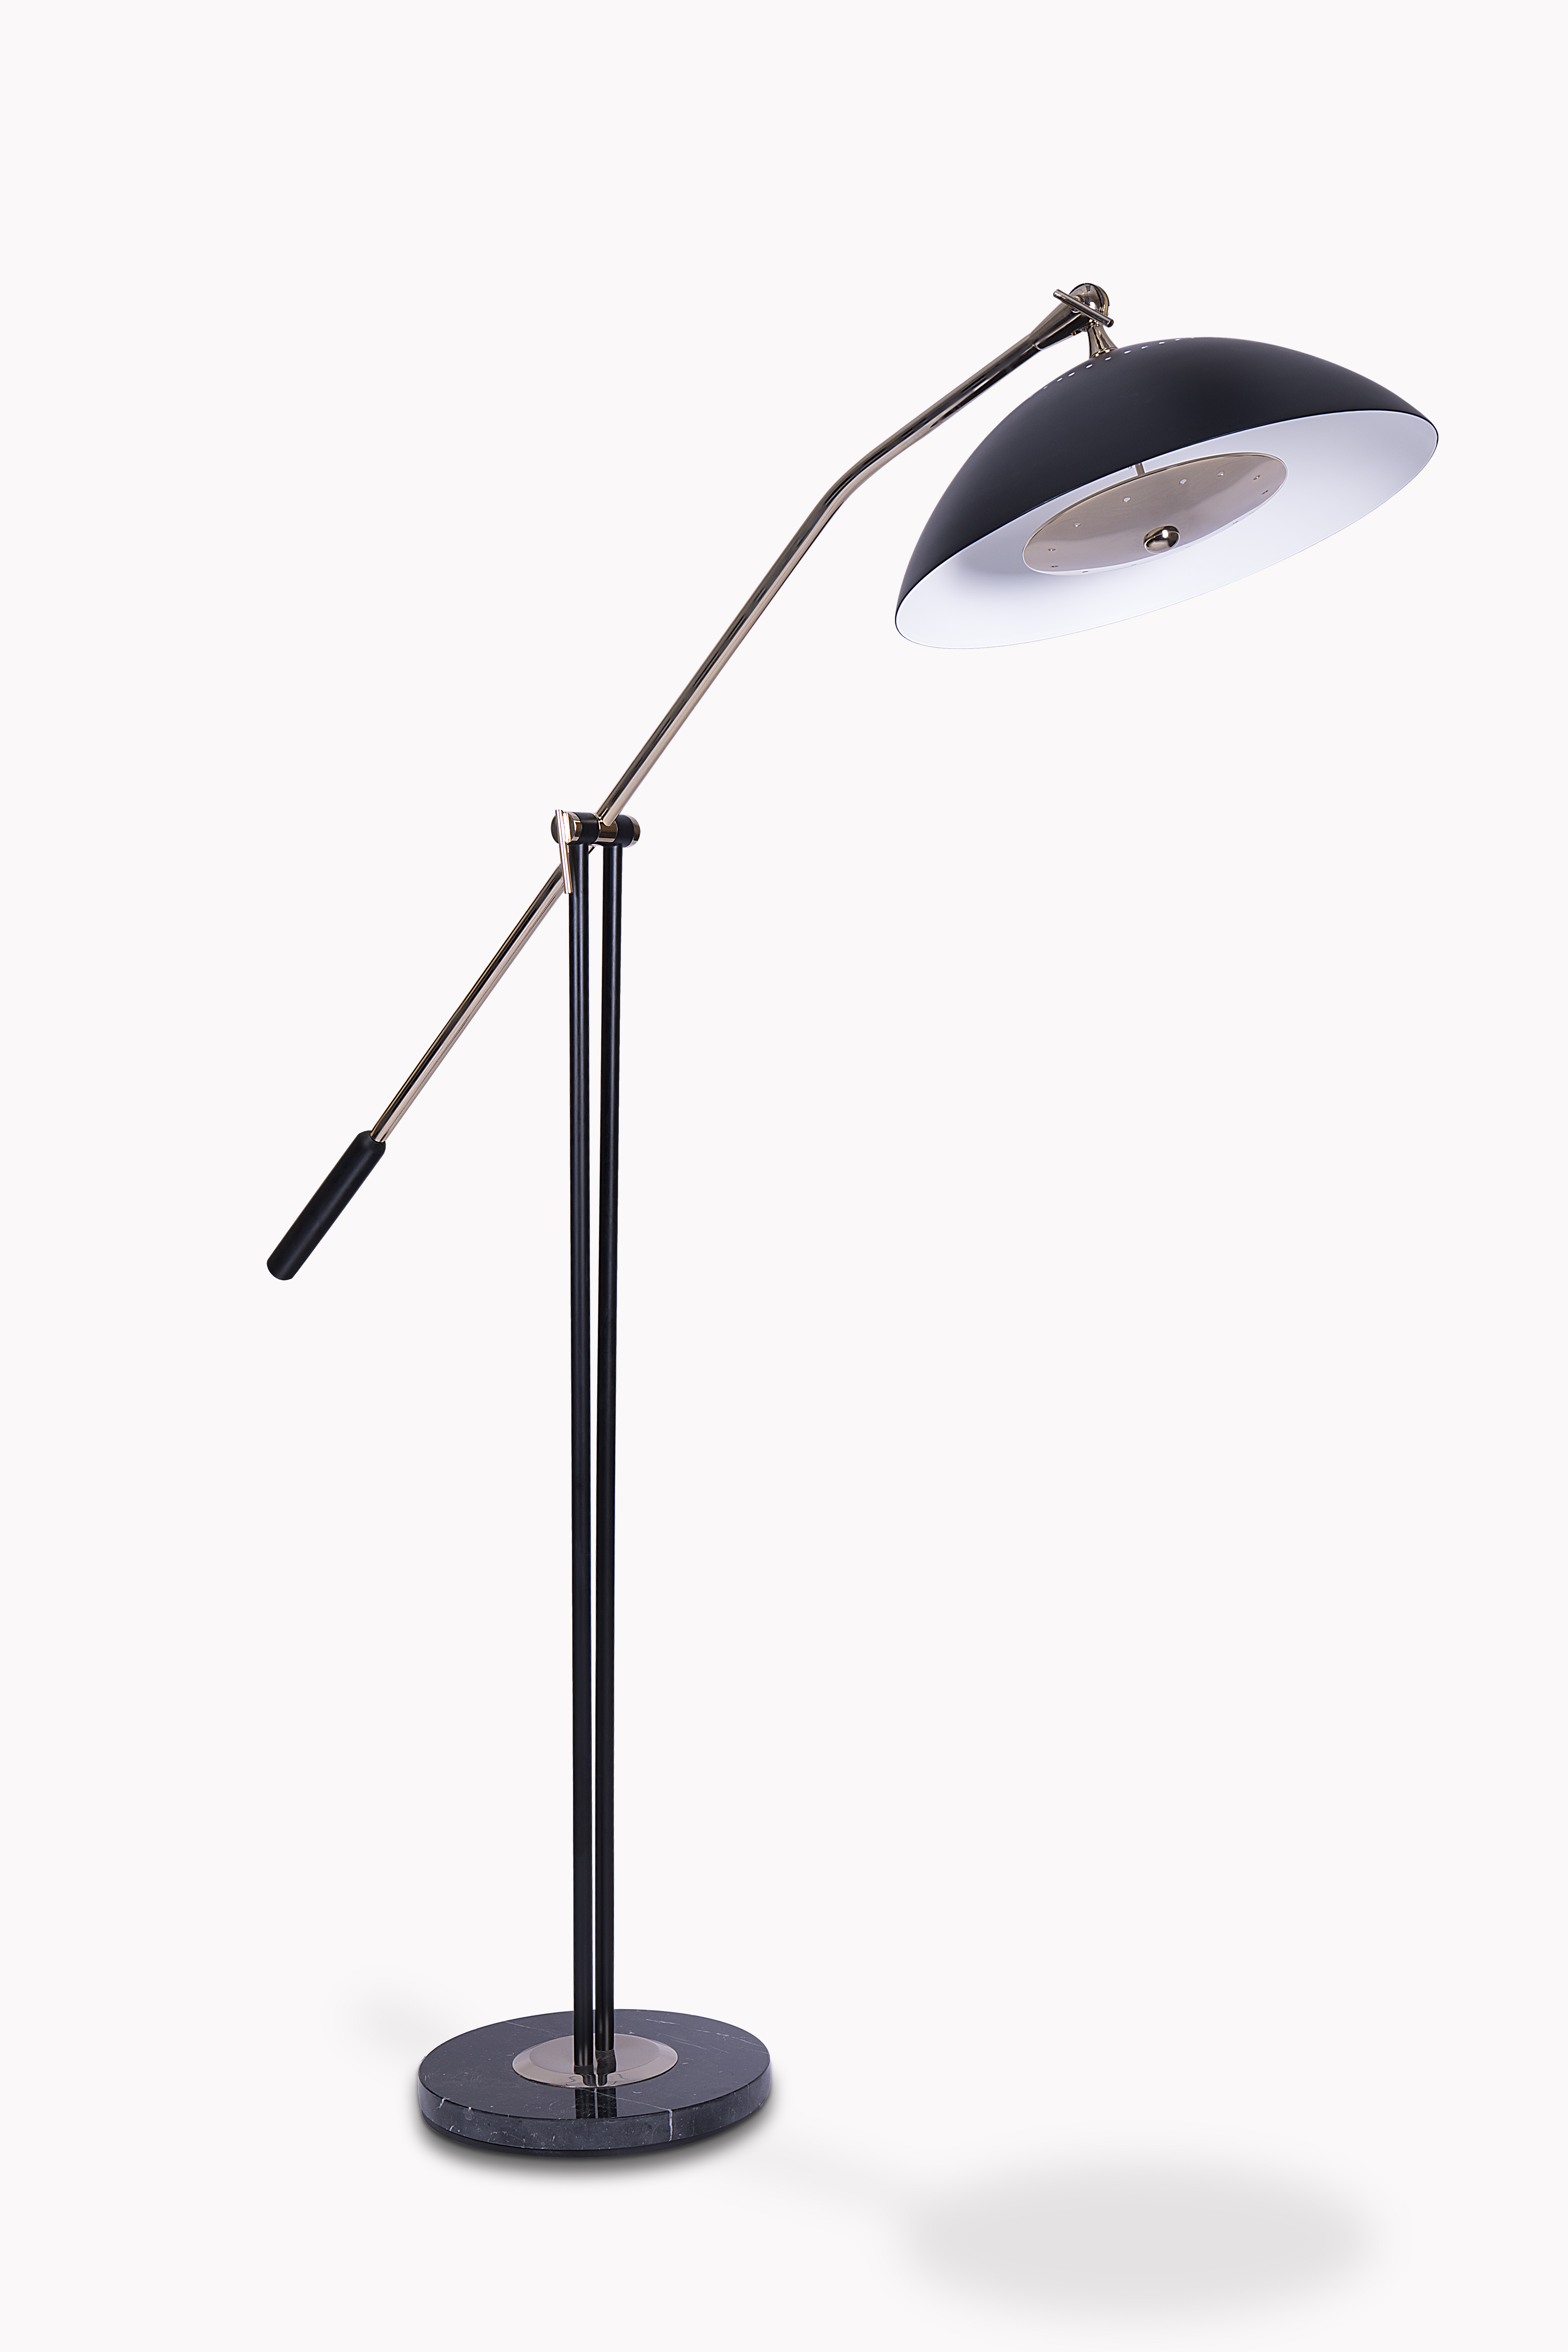 Stunning Modern Floor Lamps for Your Industrial Design (1)  Stunning Modern Floor Lamps for Your Industrial Design Stunning Modern Floor Lamps for Your Industrial Design 7